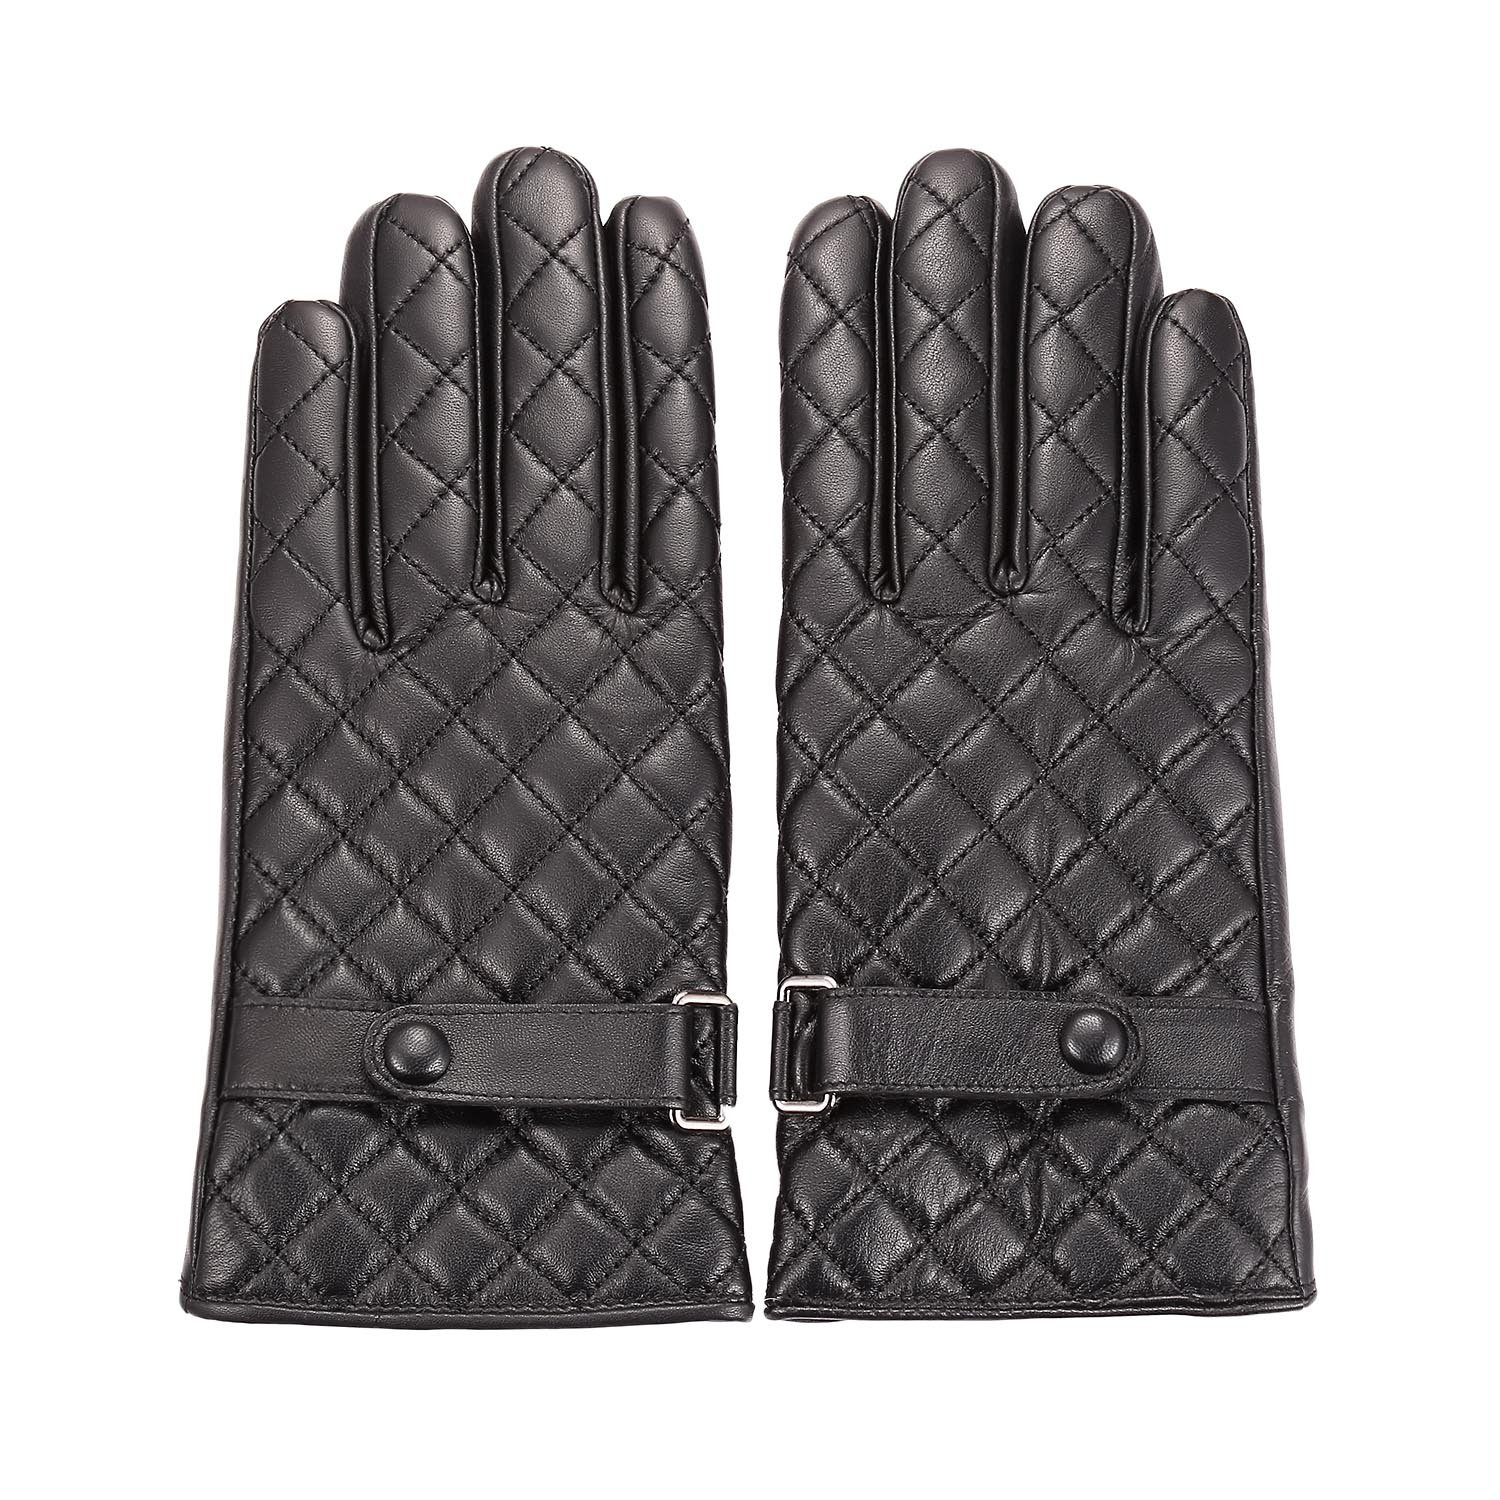 Womens Winter Leather Warm Touchscreen Texting Driving Fleece Lined Gloves